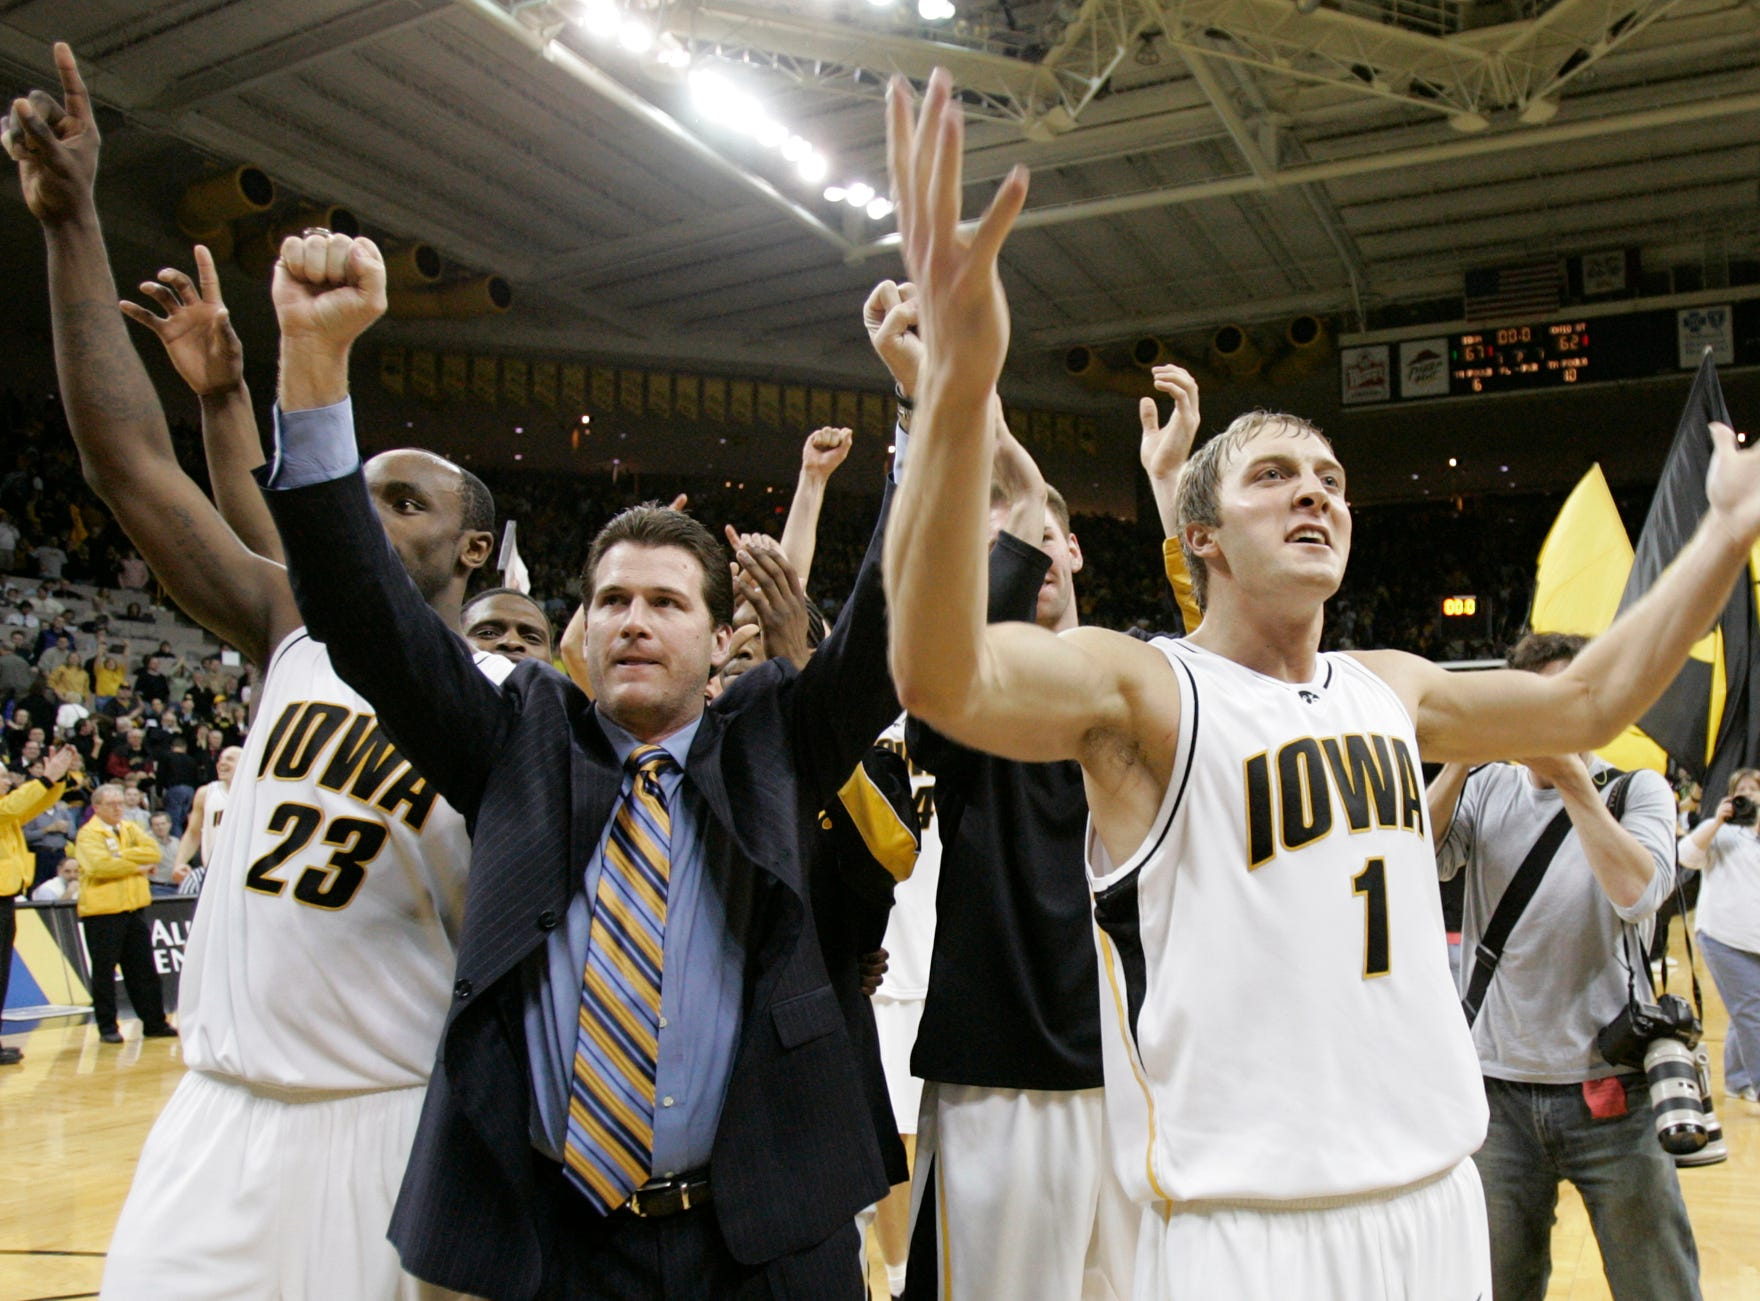 Iowa coach Steve Alford, second from left,  celebrates with his players Doug Thomas, left, and Adam Haluska, right, after their 67-62 win over Ohio State in this NCAA college basketball game, Saturday, Jan. 28, 2006, in Iowa City, Iowa.  Haluska scored 18 points to lead Iowa in the win.